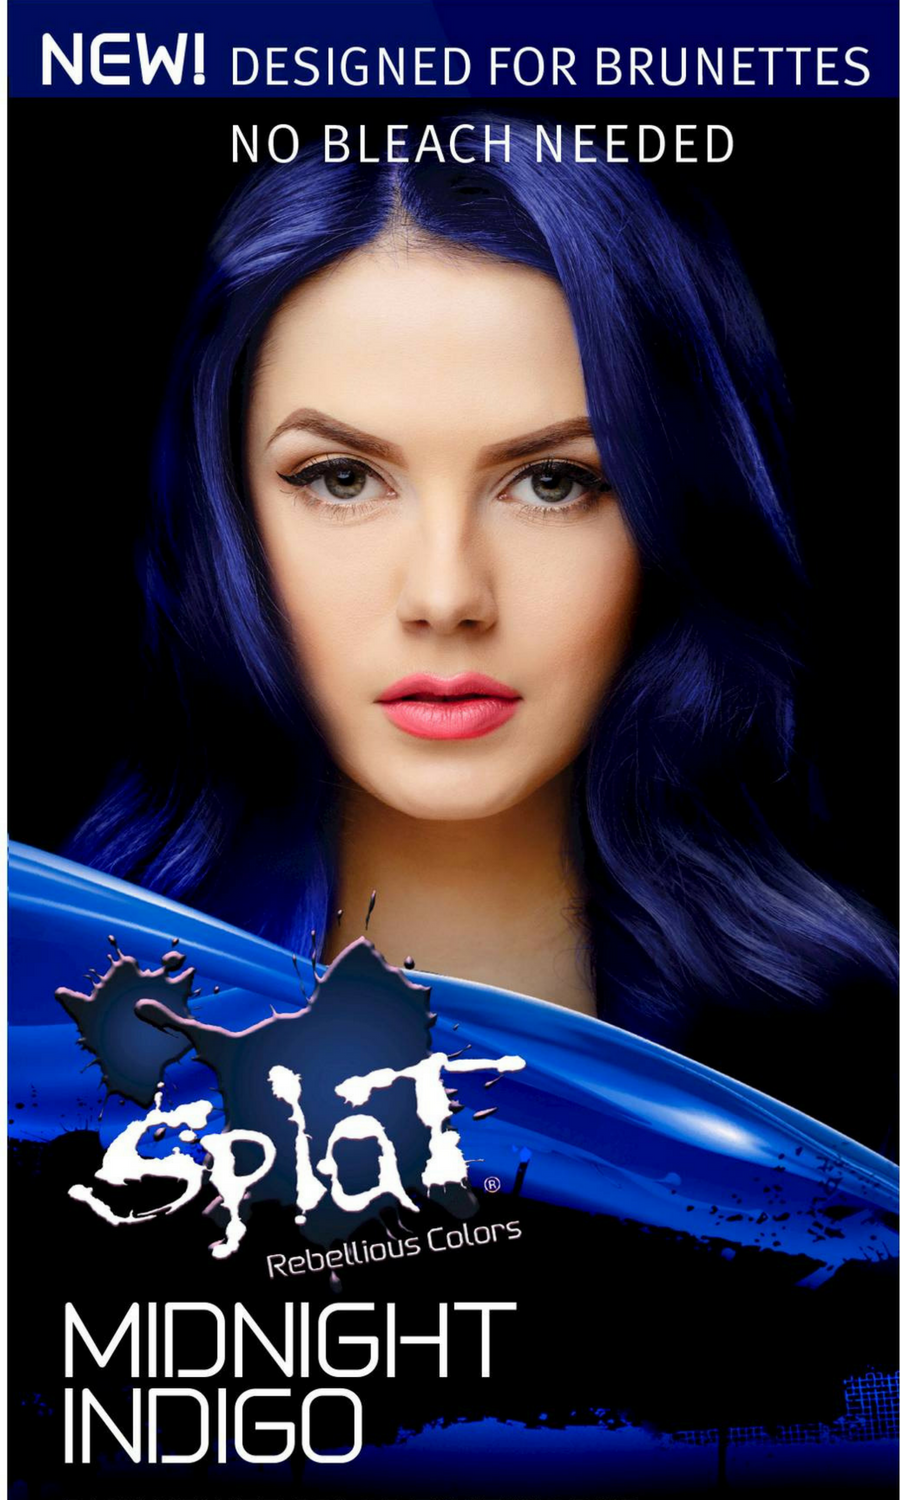 This Color Is Awesome I Have Dark Hair And I Ve Never Been Able To Have Really Intense Bright Colors Witho Splat Midnight Hair Color Midnight Hair Hair Color